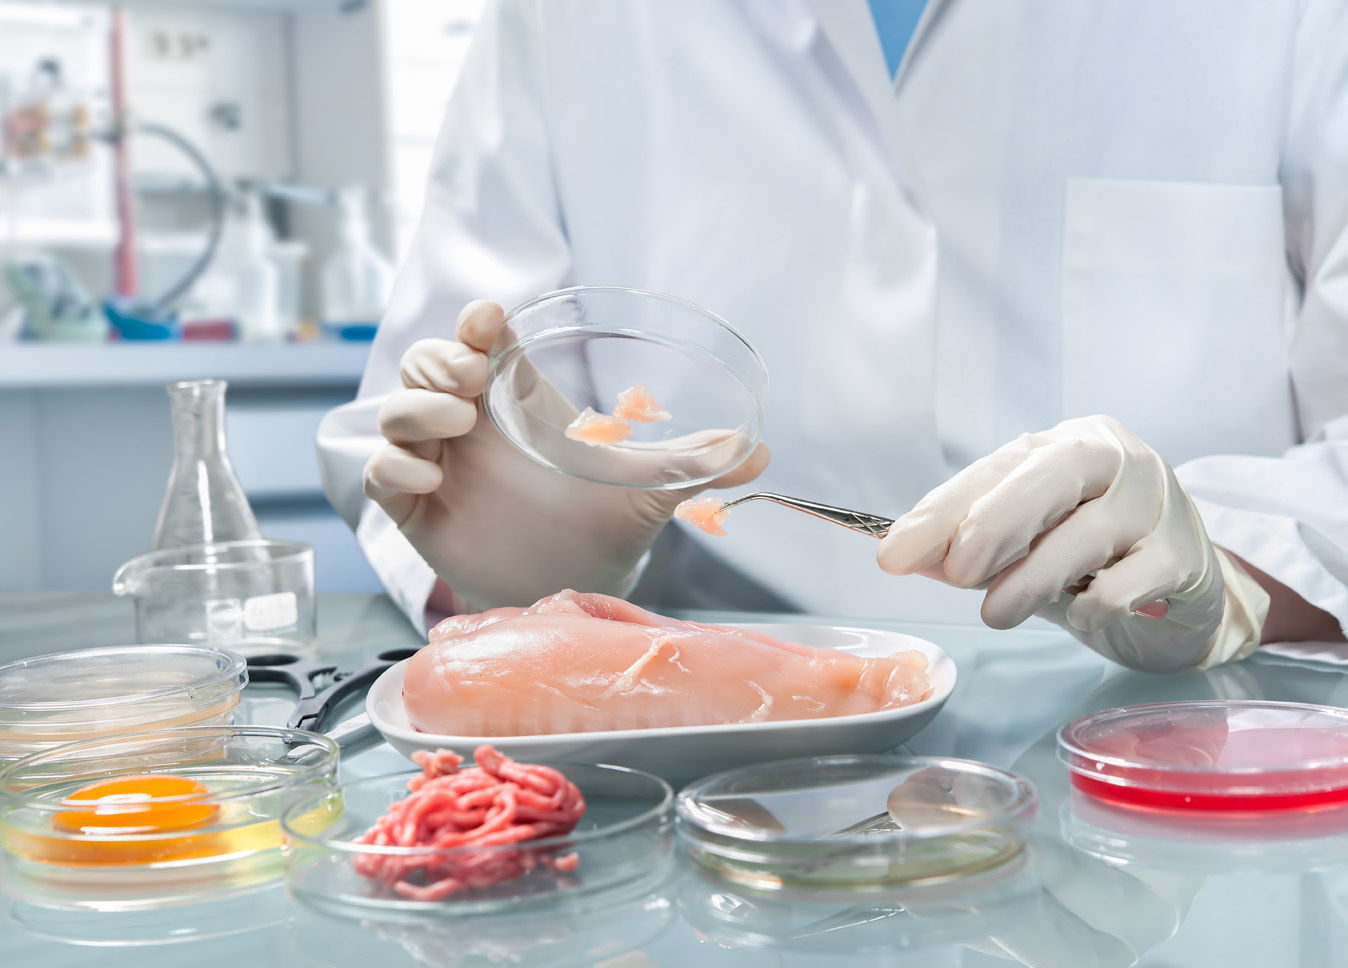 Food safety is our top priority